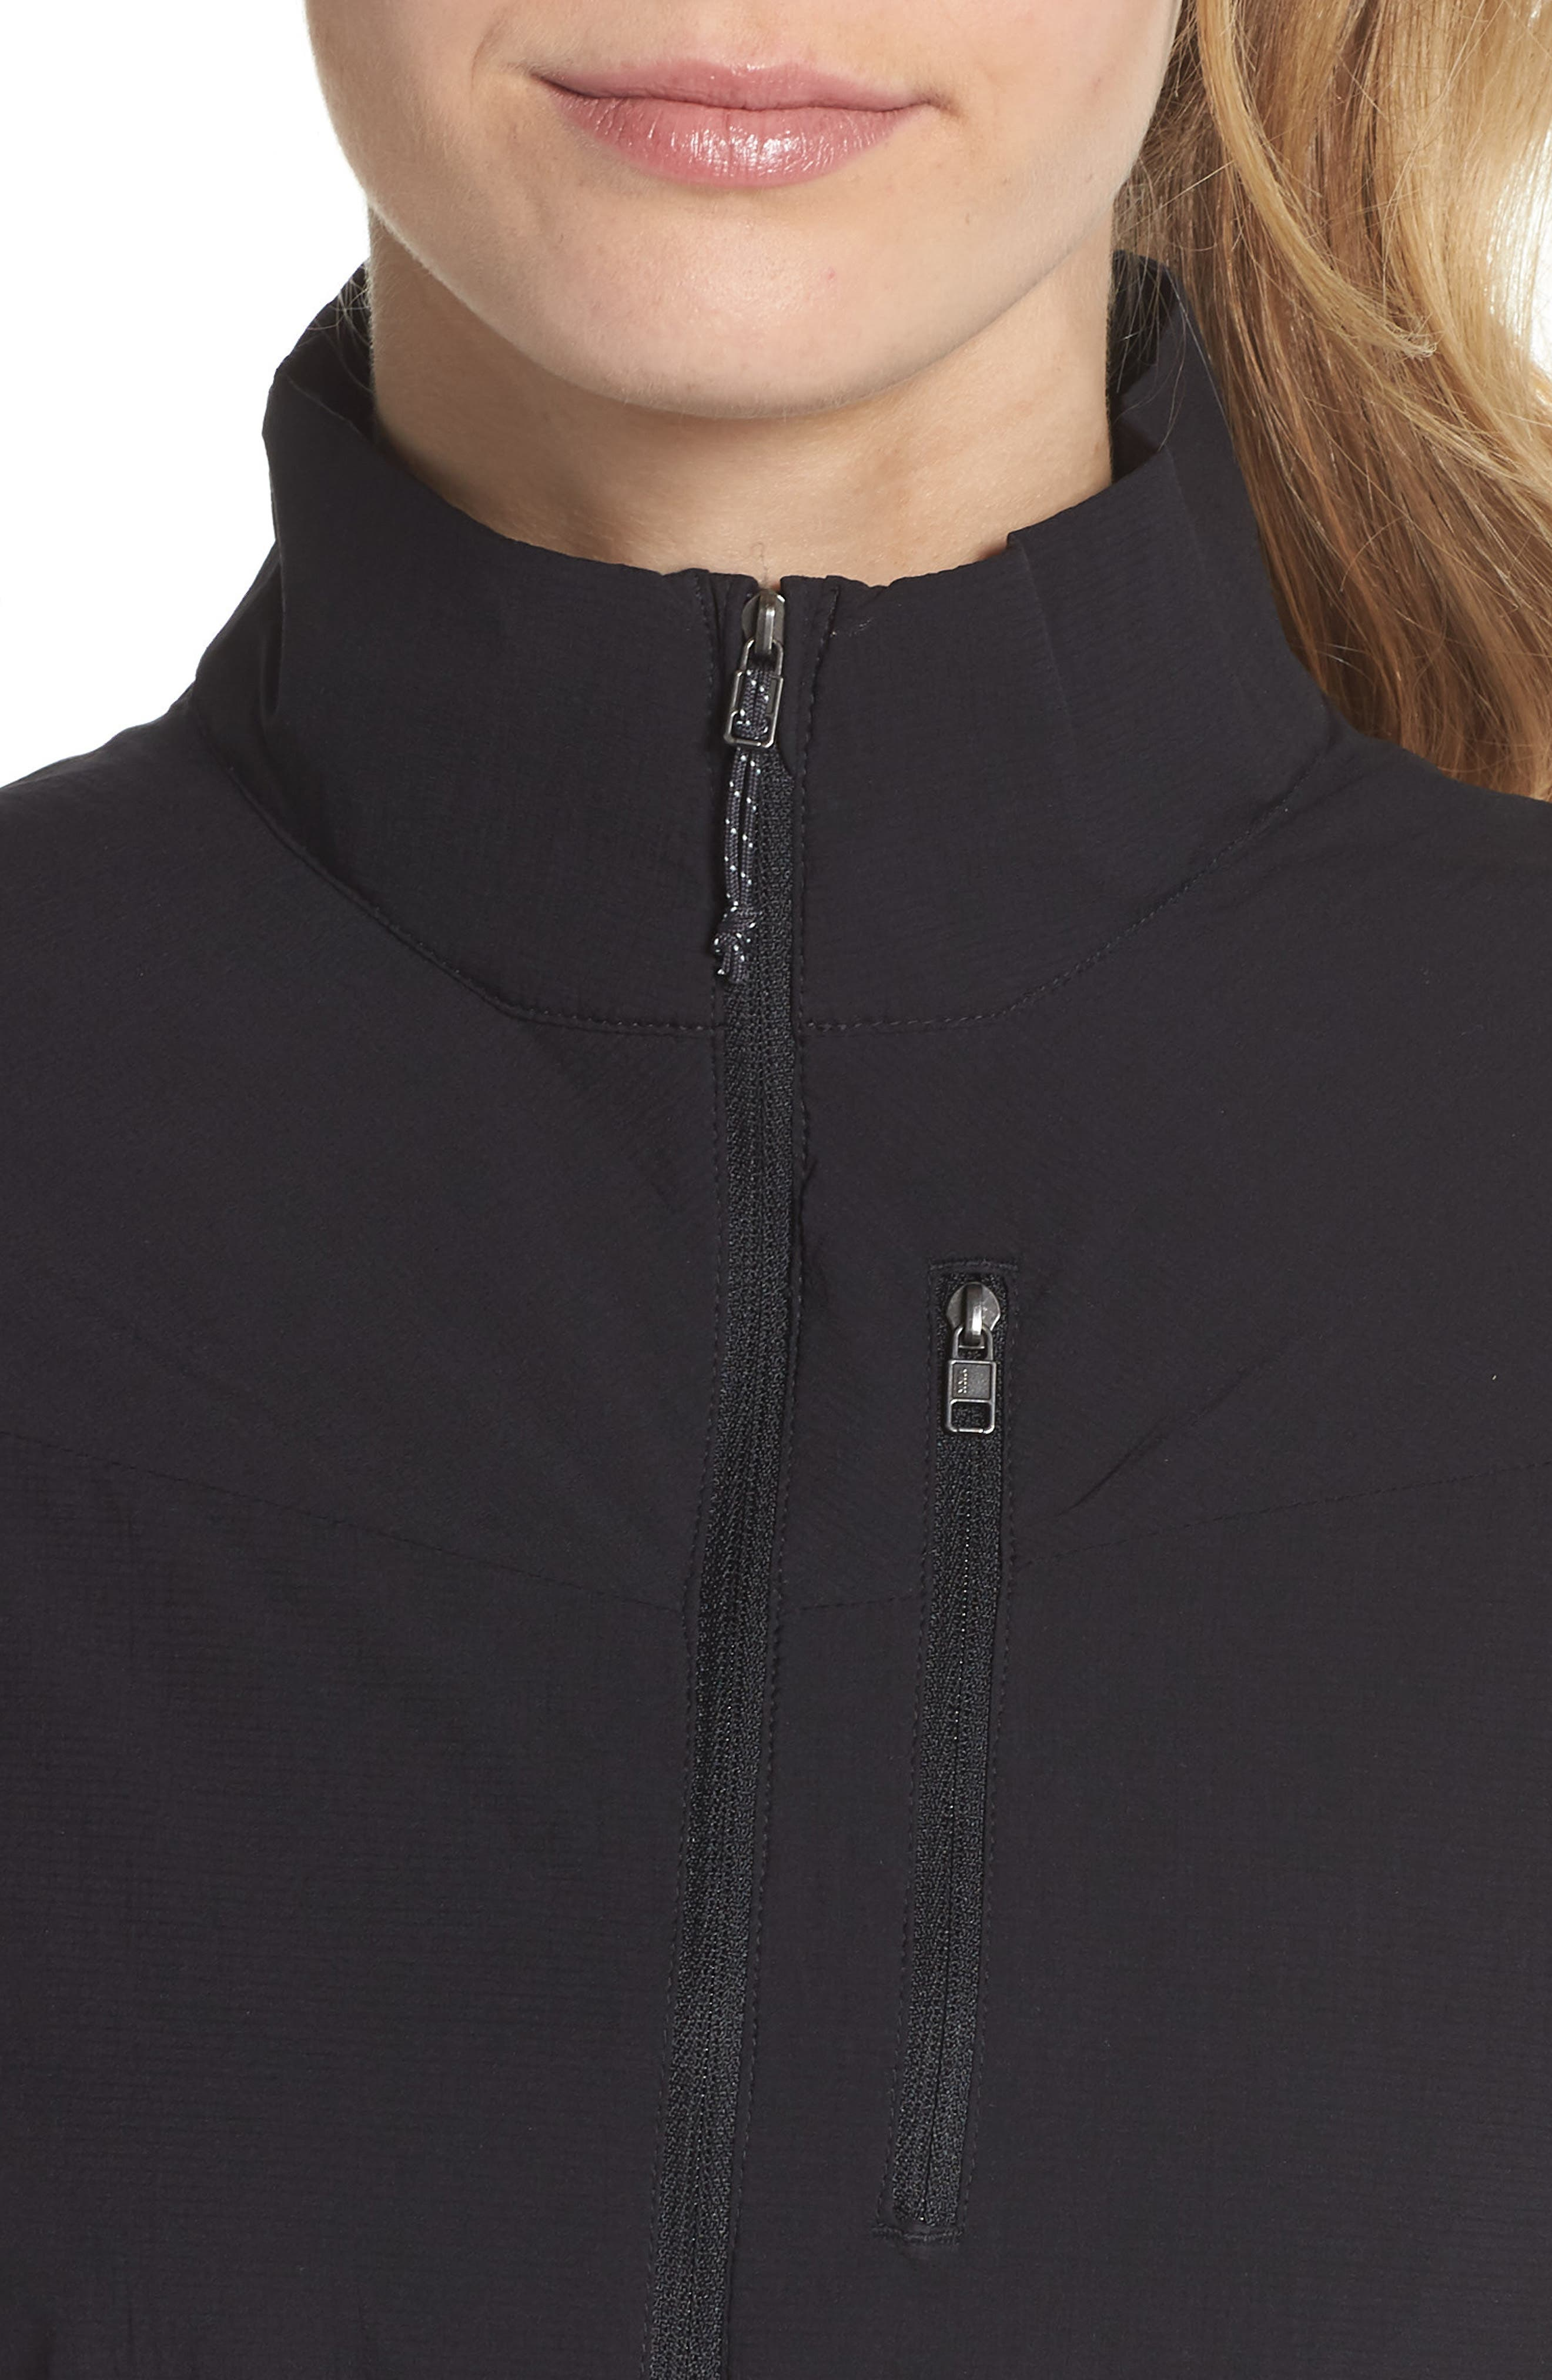 Airshed Pullover,                             Alternate thumbnail 4, color,                             001